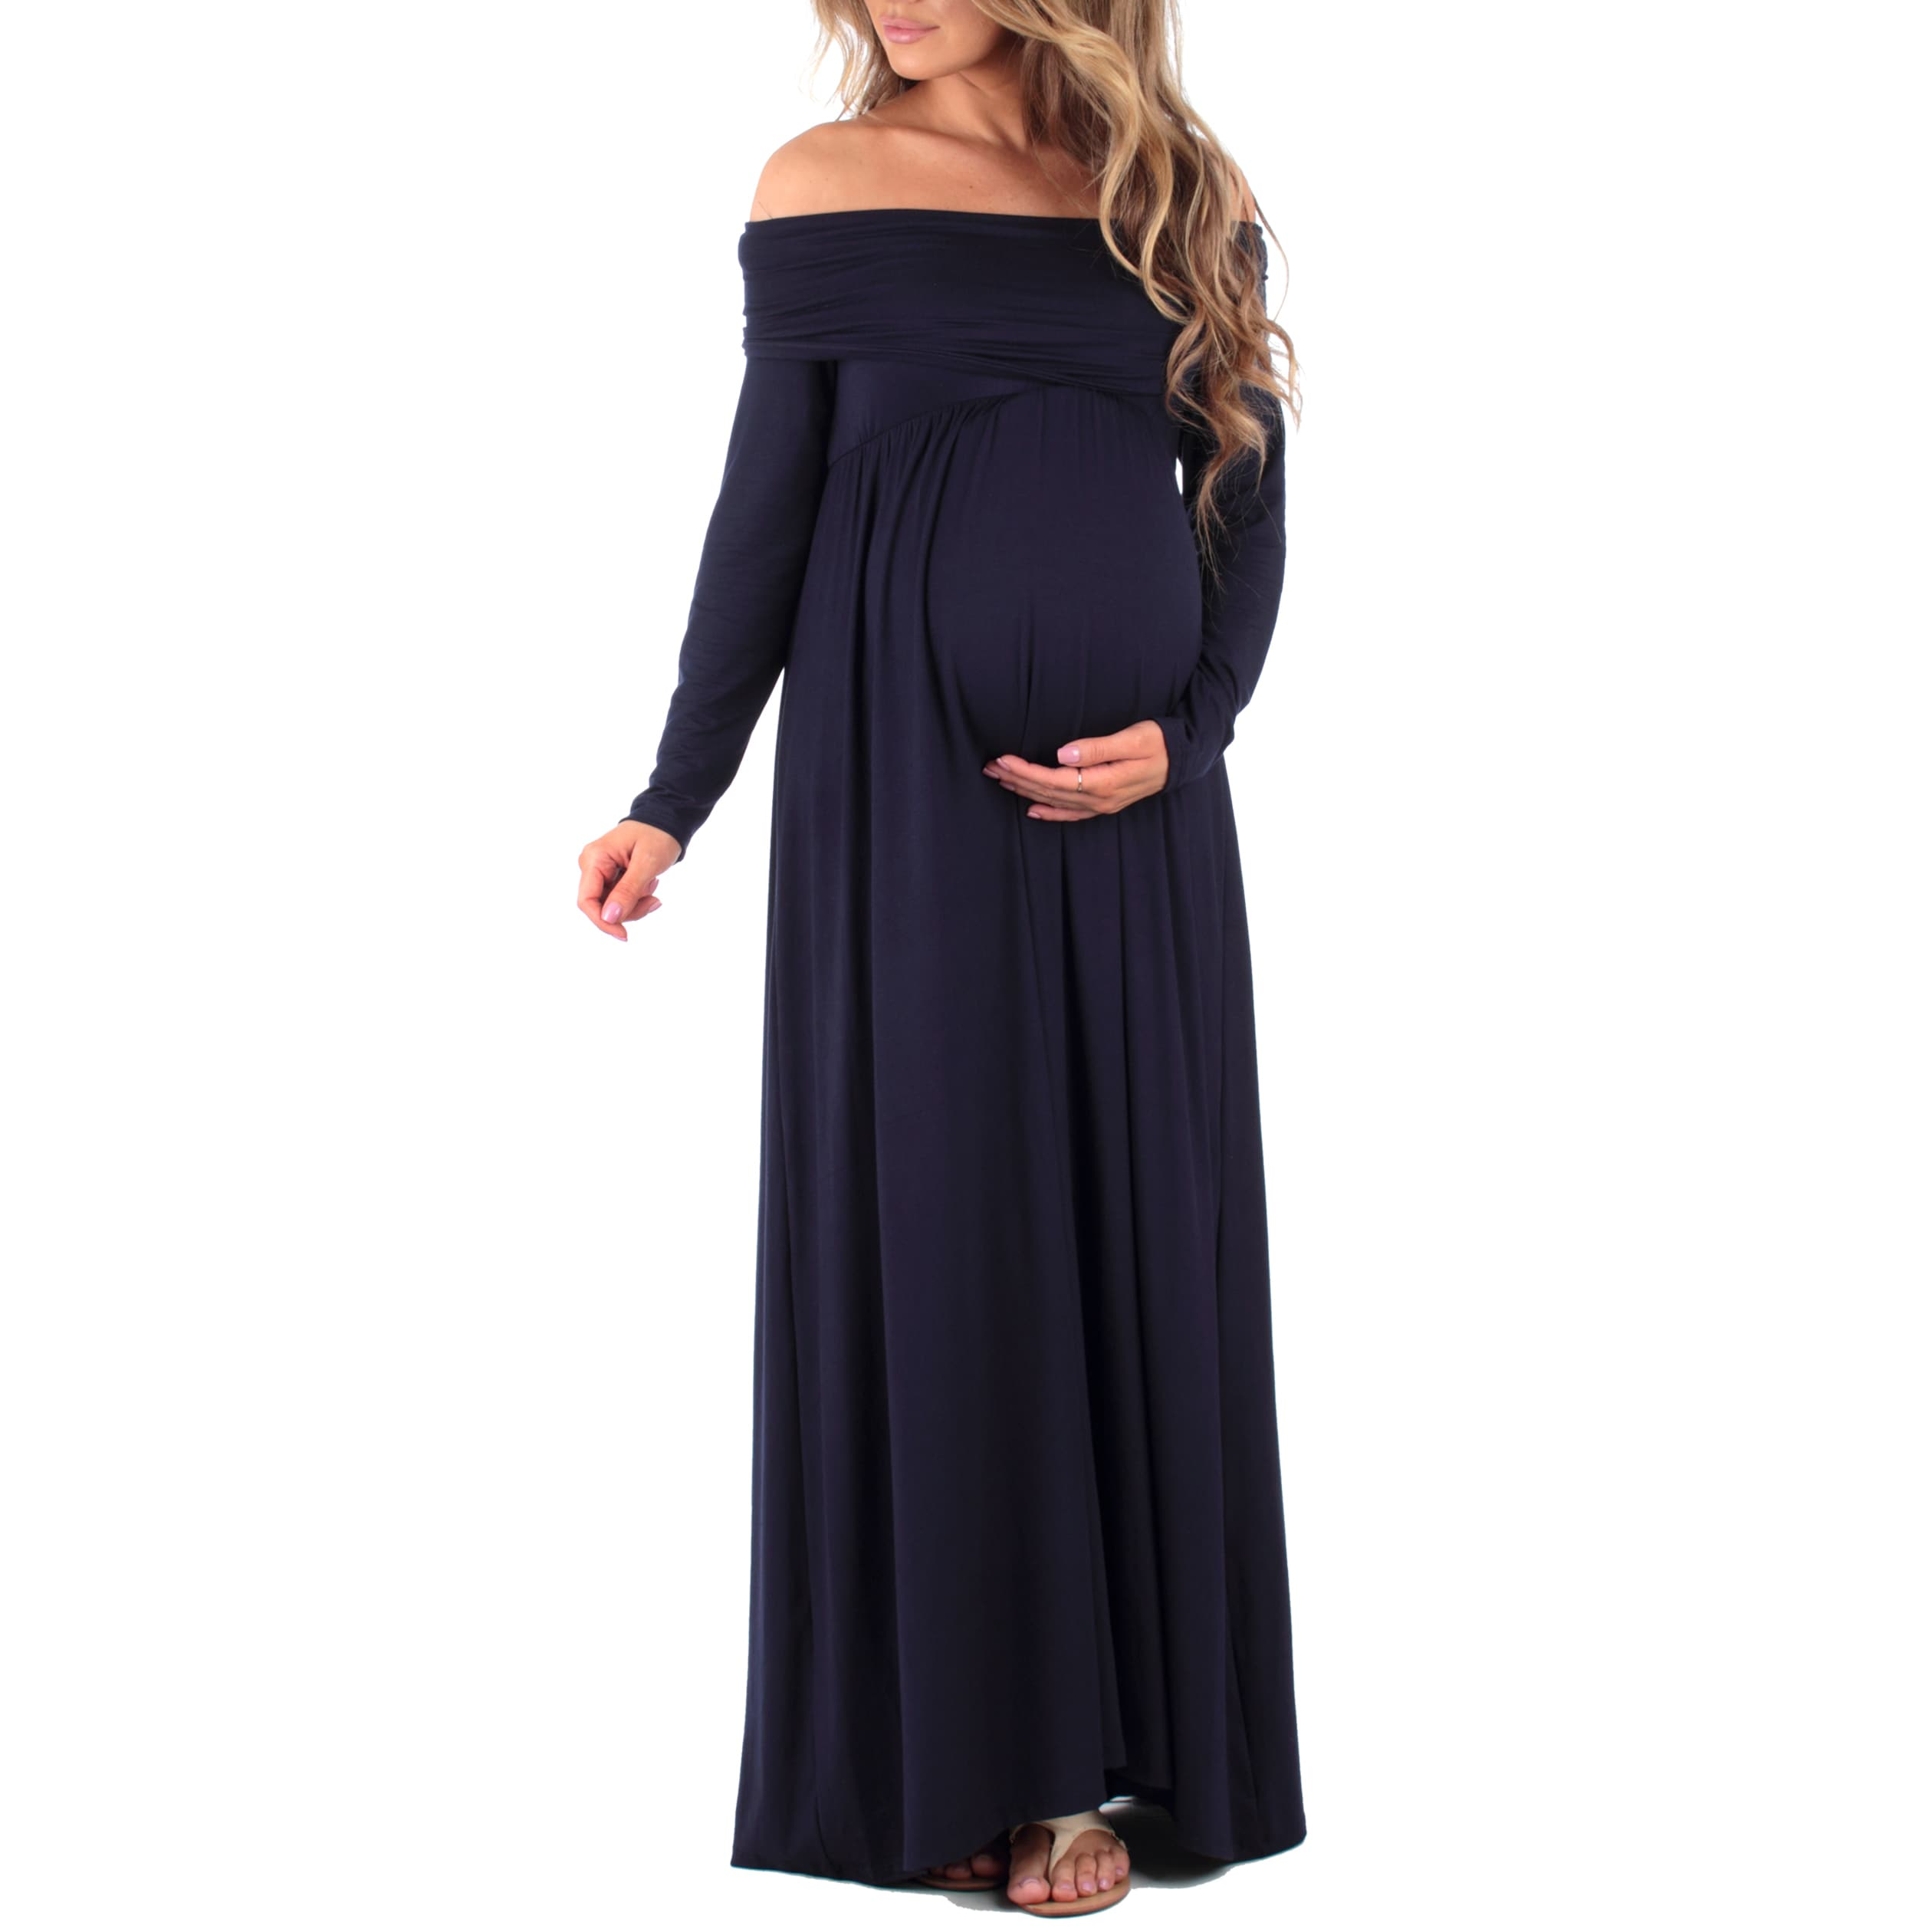 Mother bee womens over the shoulder ruched maternity and nursing mother bee womens over the shoulder ruched maternity and nursing dress free shipping on orders over 45 overstock 21215490 ombrellifo Image collections